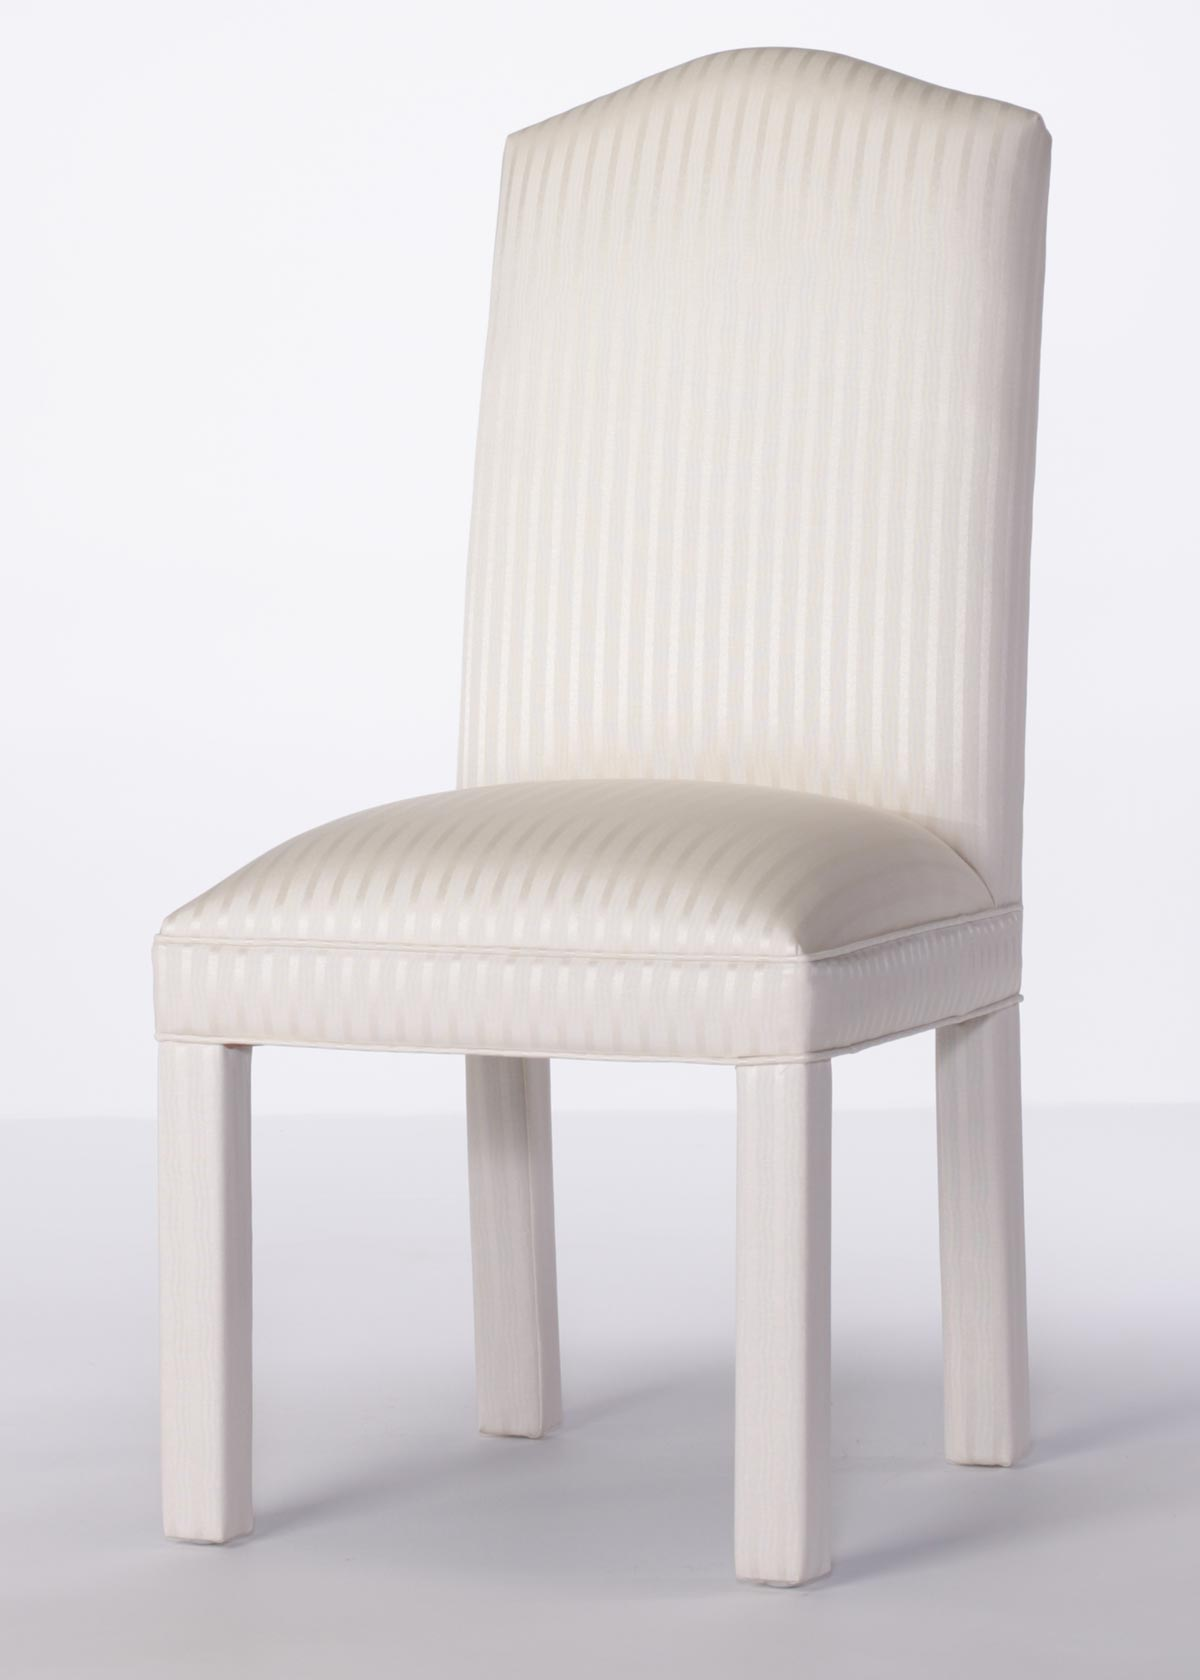 Camel Back Parson Chair  Direct from the factory